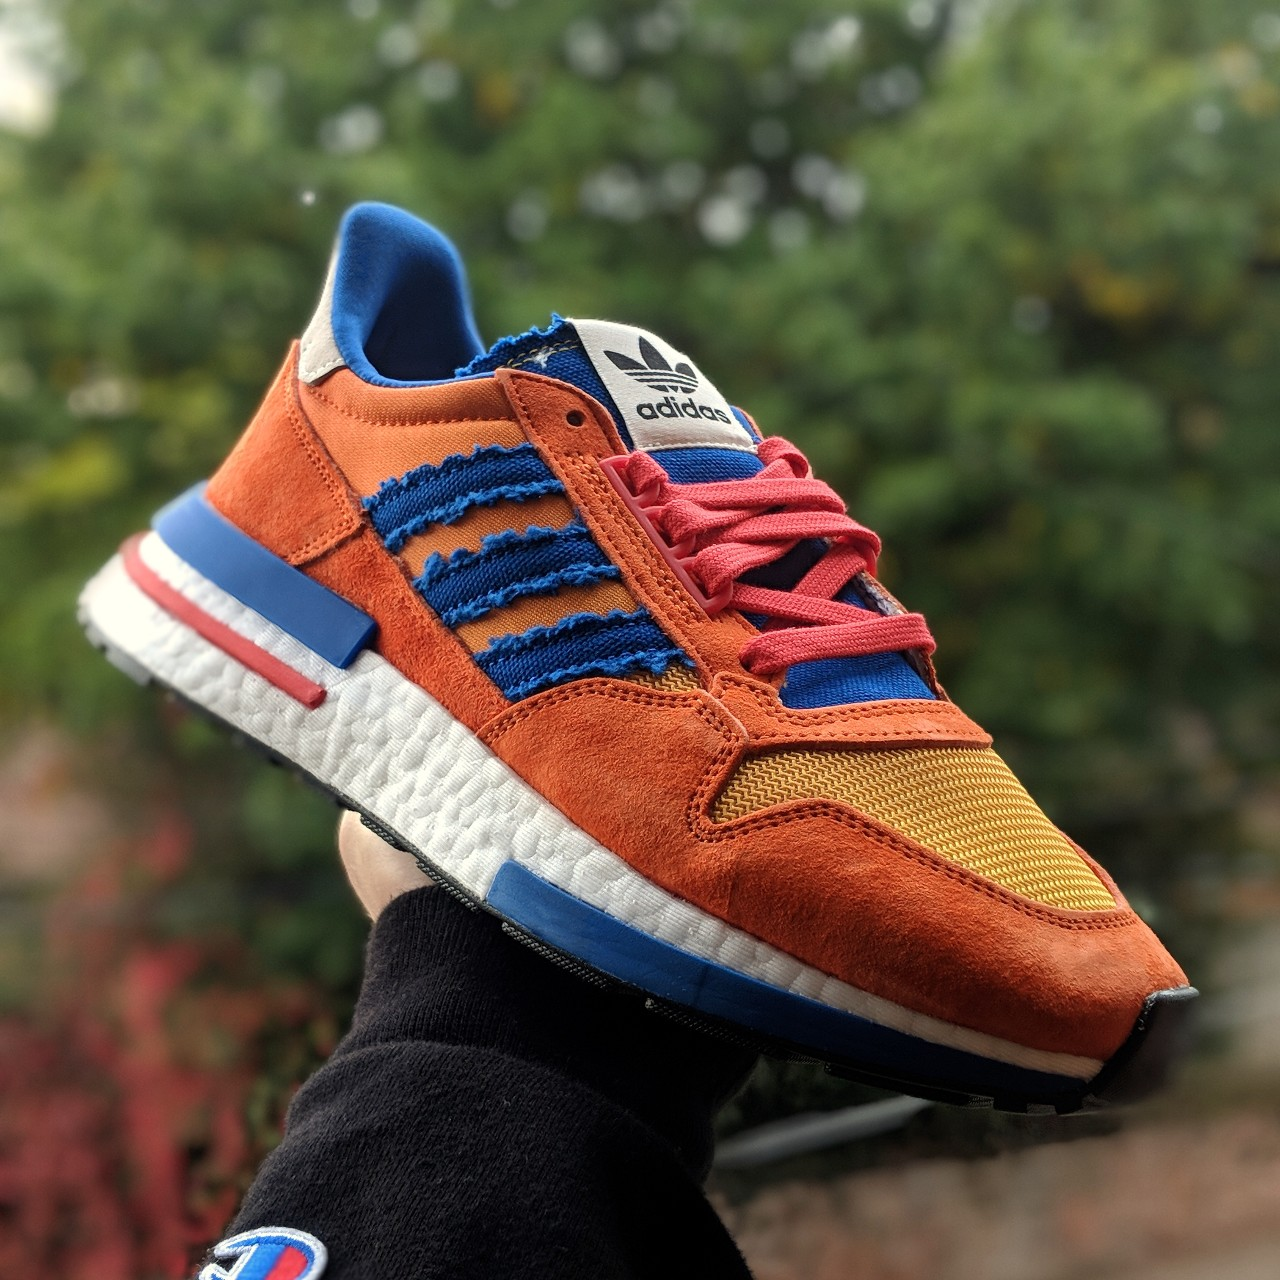 reputable site 9d556 d9739 🔥 ADIDAS x Dragon Ball Z ZX500 Goku 🔥 🏷️ Brand new ...